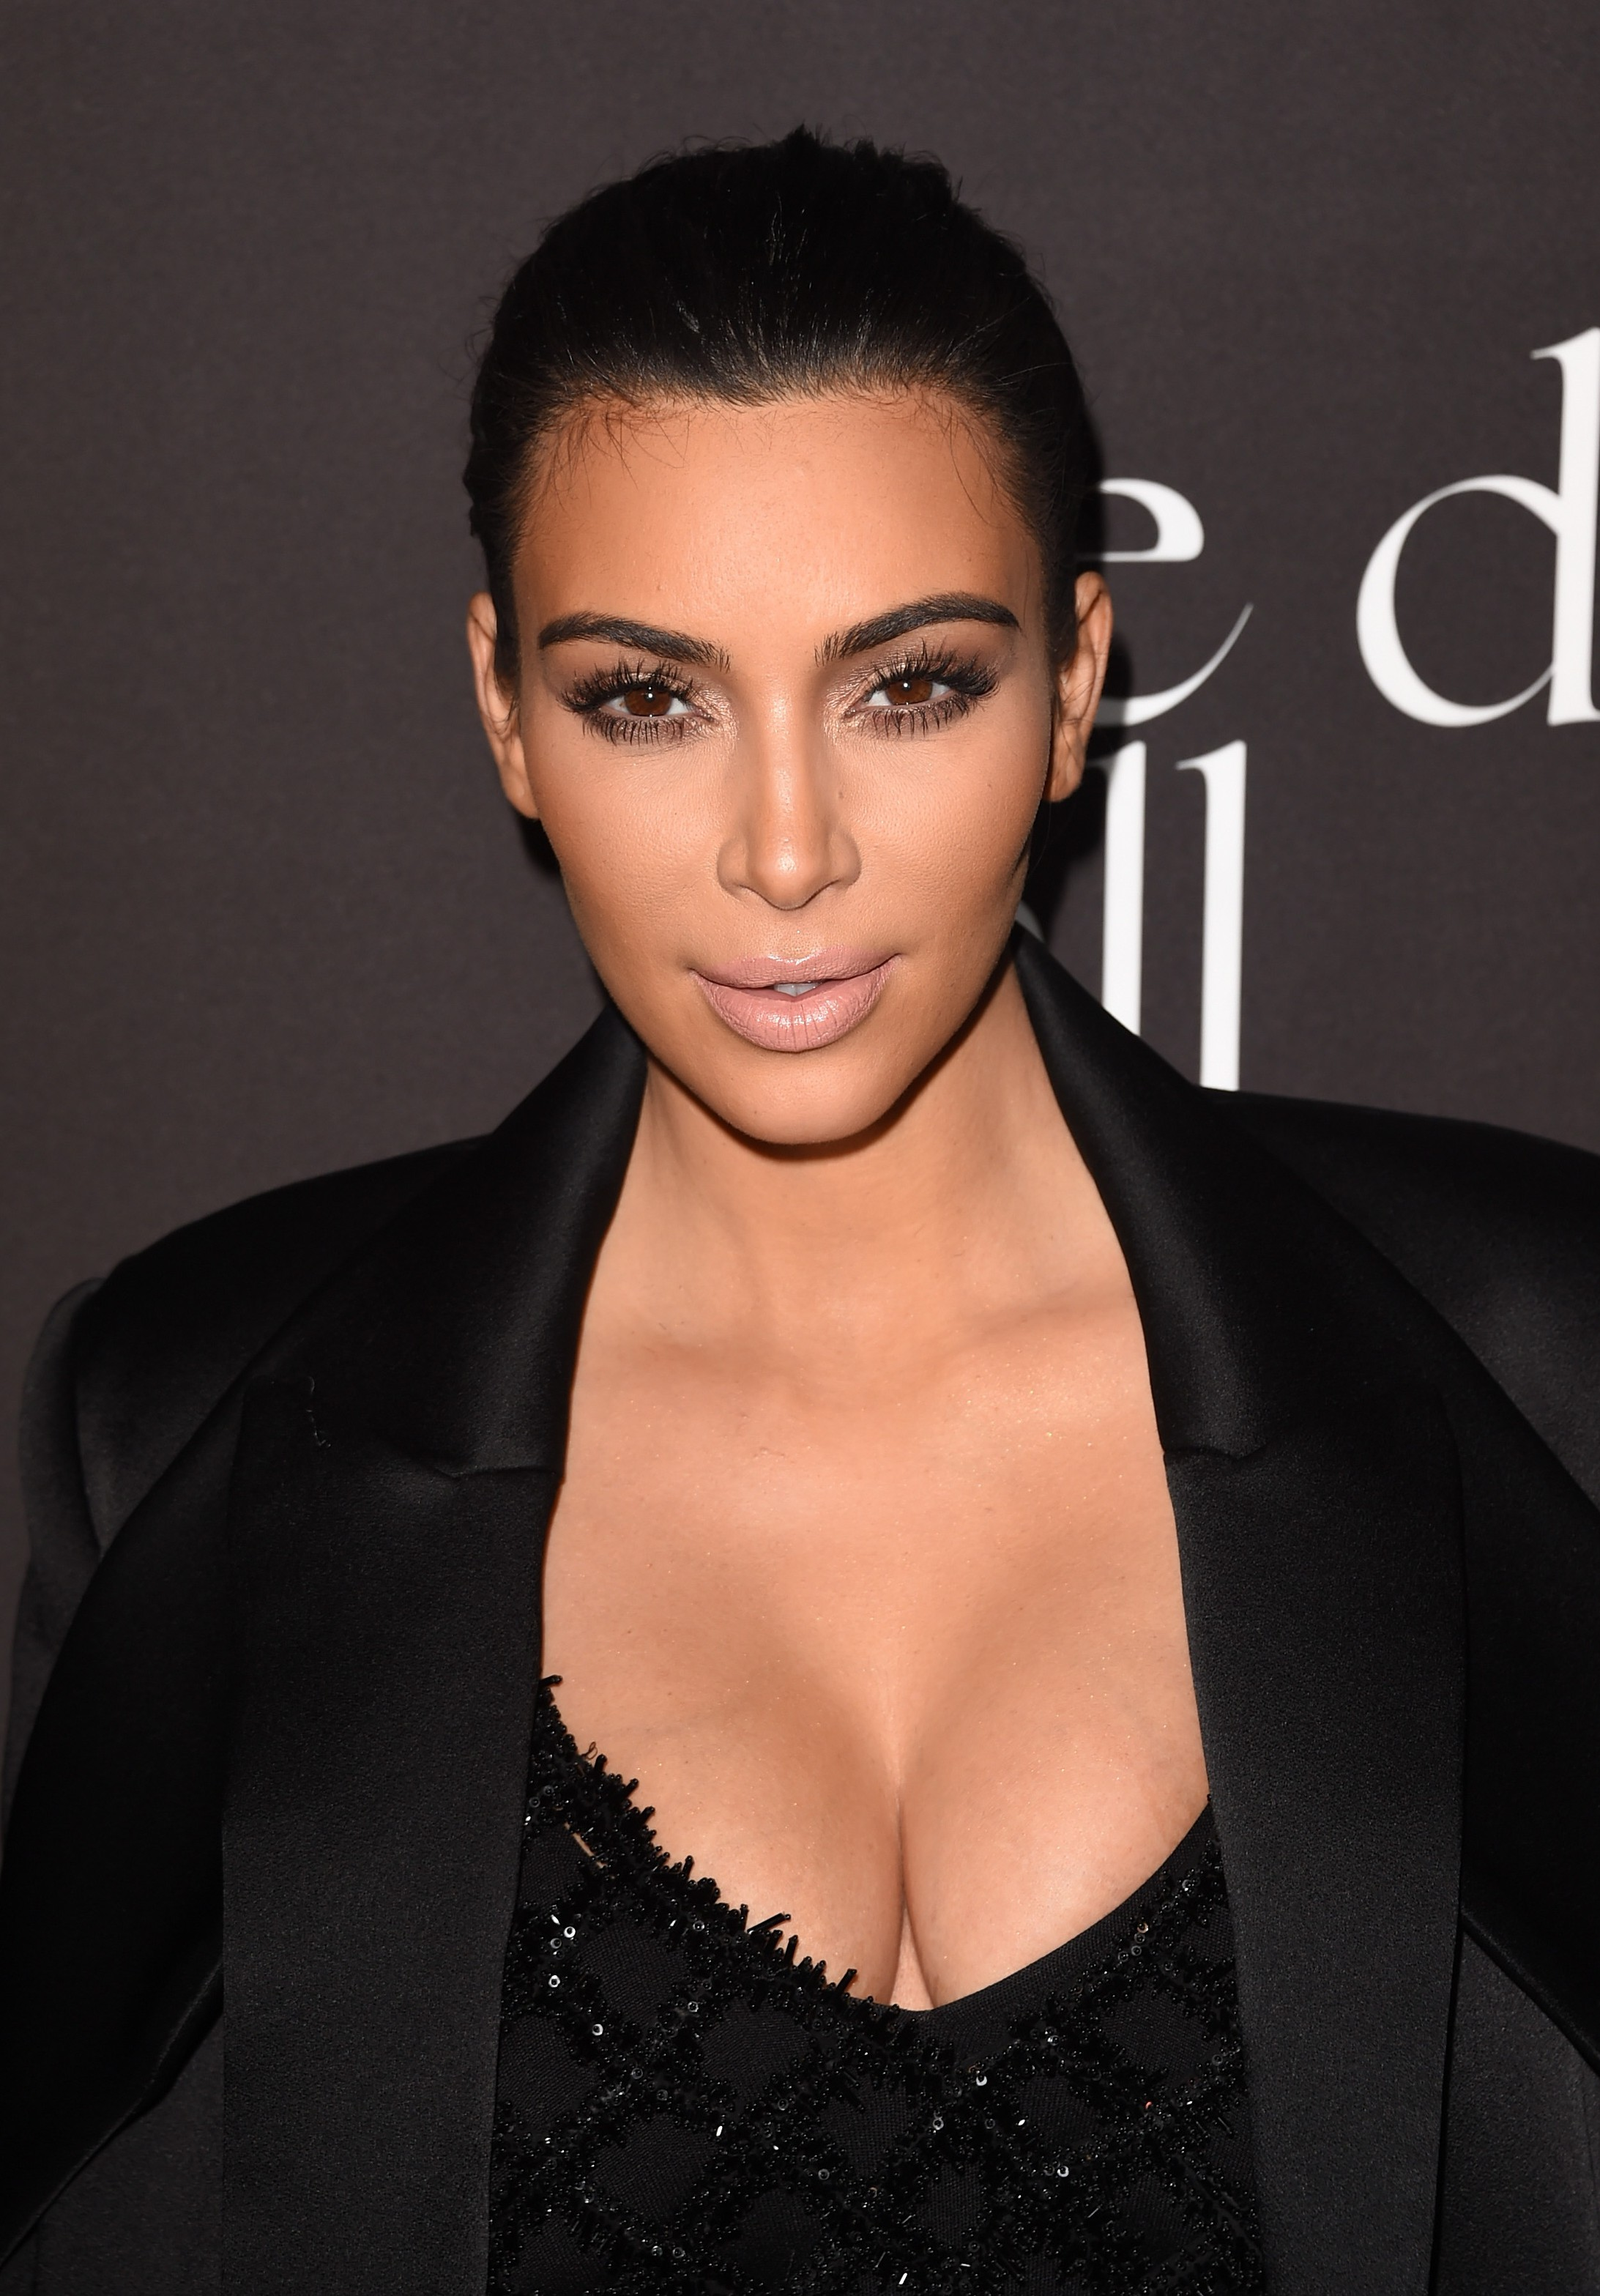 Man obsessed with Kim Kardashian dumped by wife